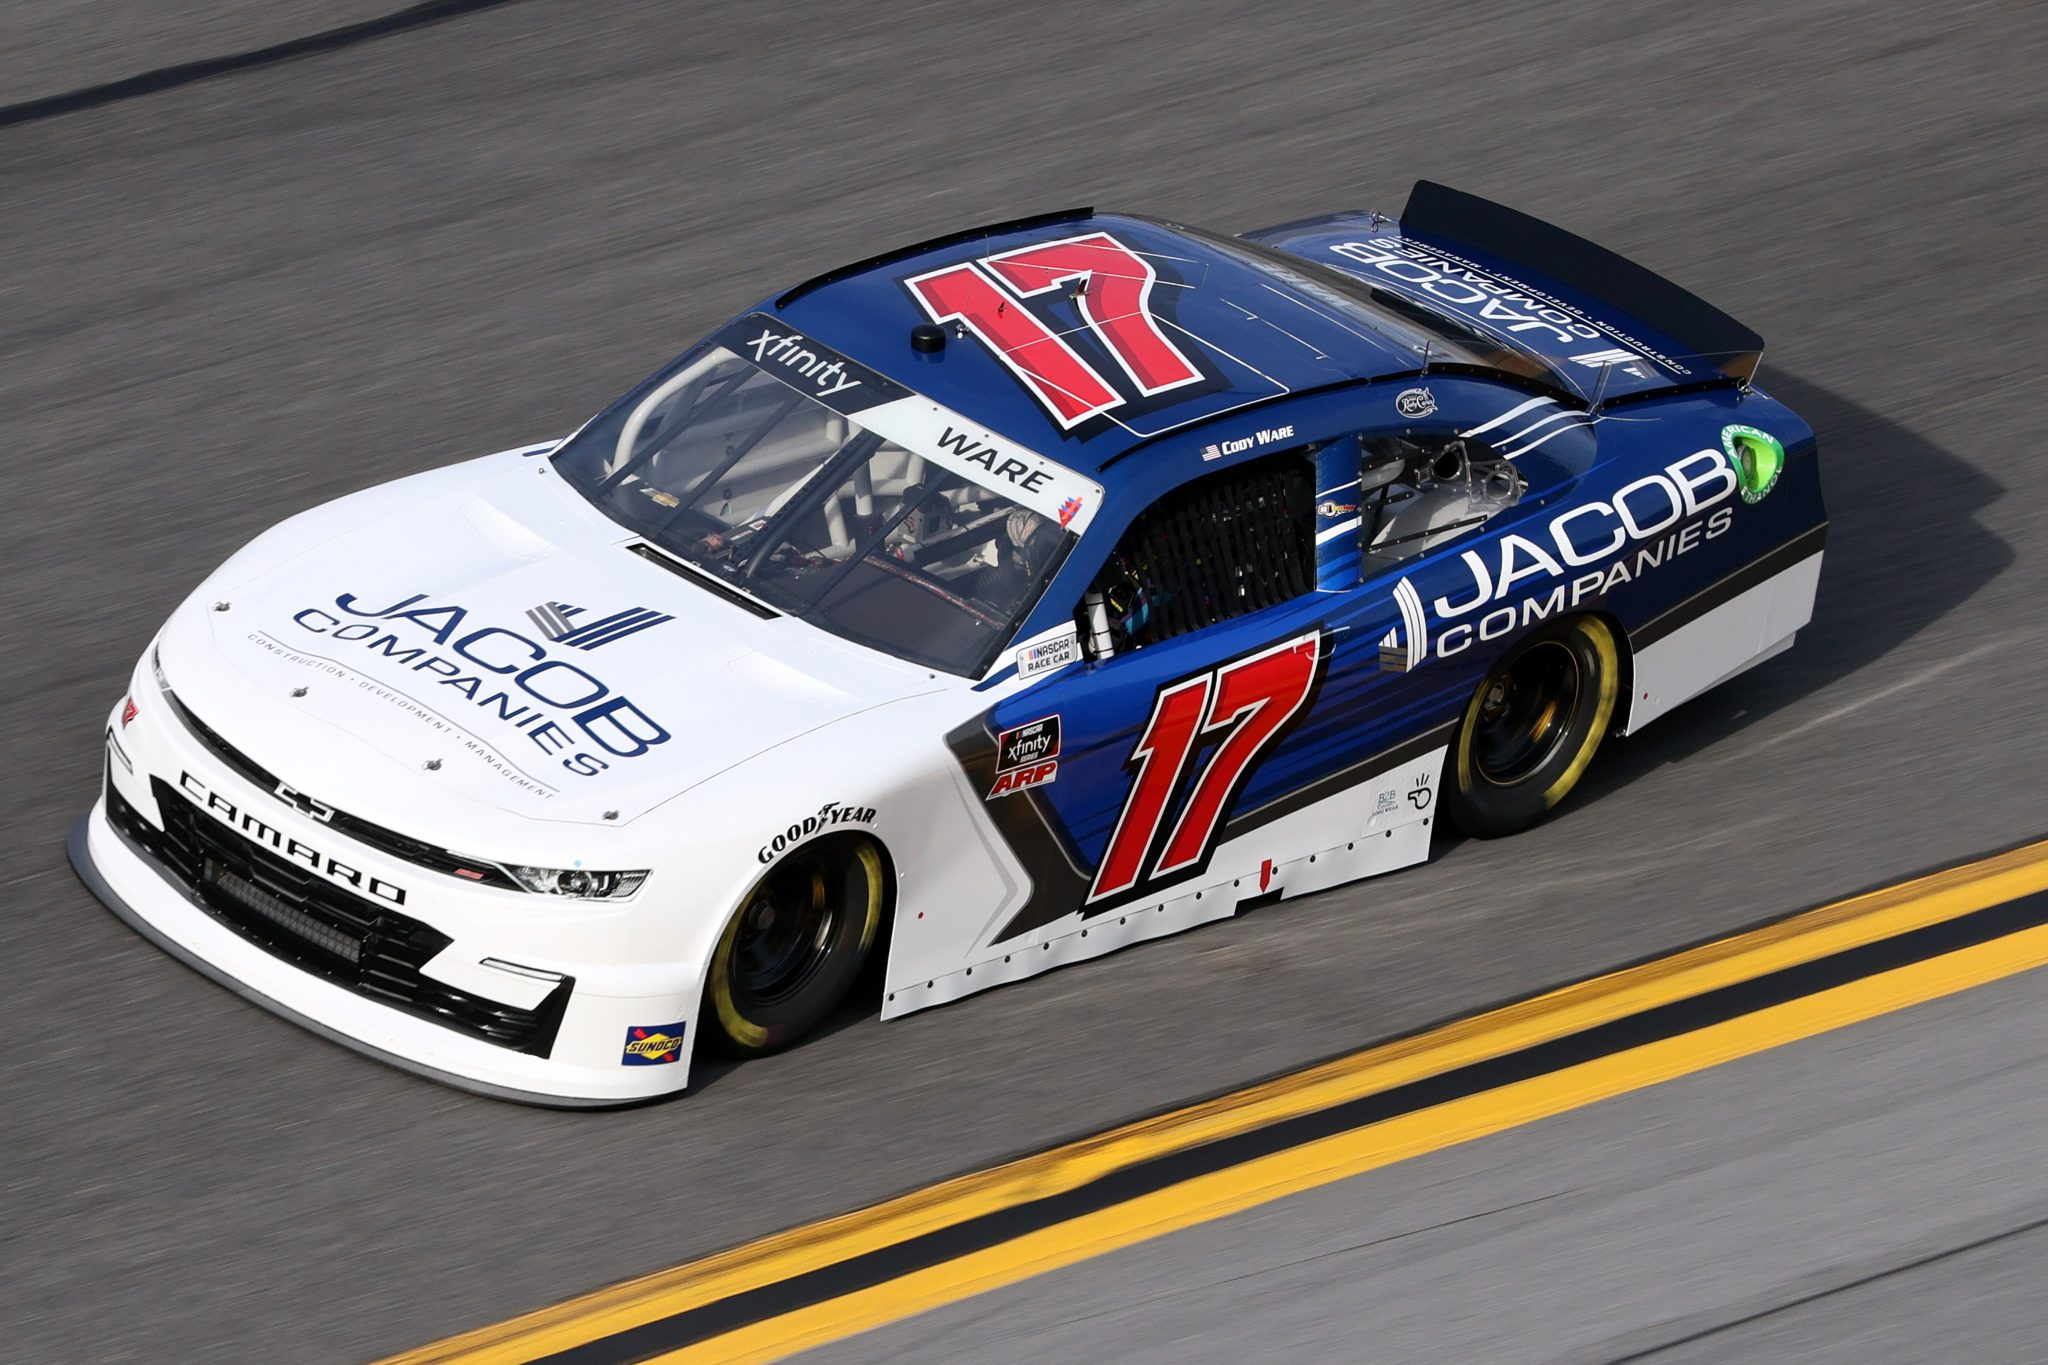 DAYTONA BEACH, FLORIDA - FEBRUARY 12: Cody Ware, driver of the #17 Jacob Companies Chevrolet, practices for the NASCAR Xfinity Series Beef. It's What's For Dinner. 300 at Daytona International Speedway on February 12, 2021 in Daytona Beach, Florida. (Photo by James Gilbert/Getty Images) | Getty Images